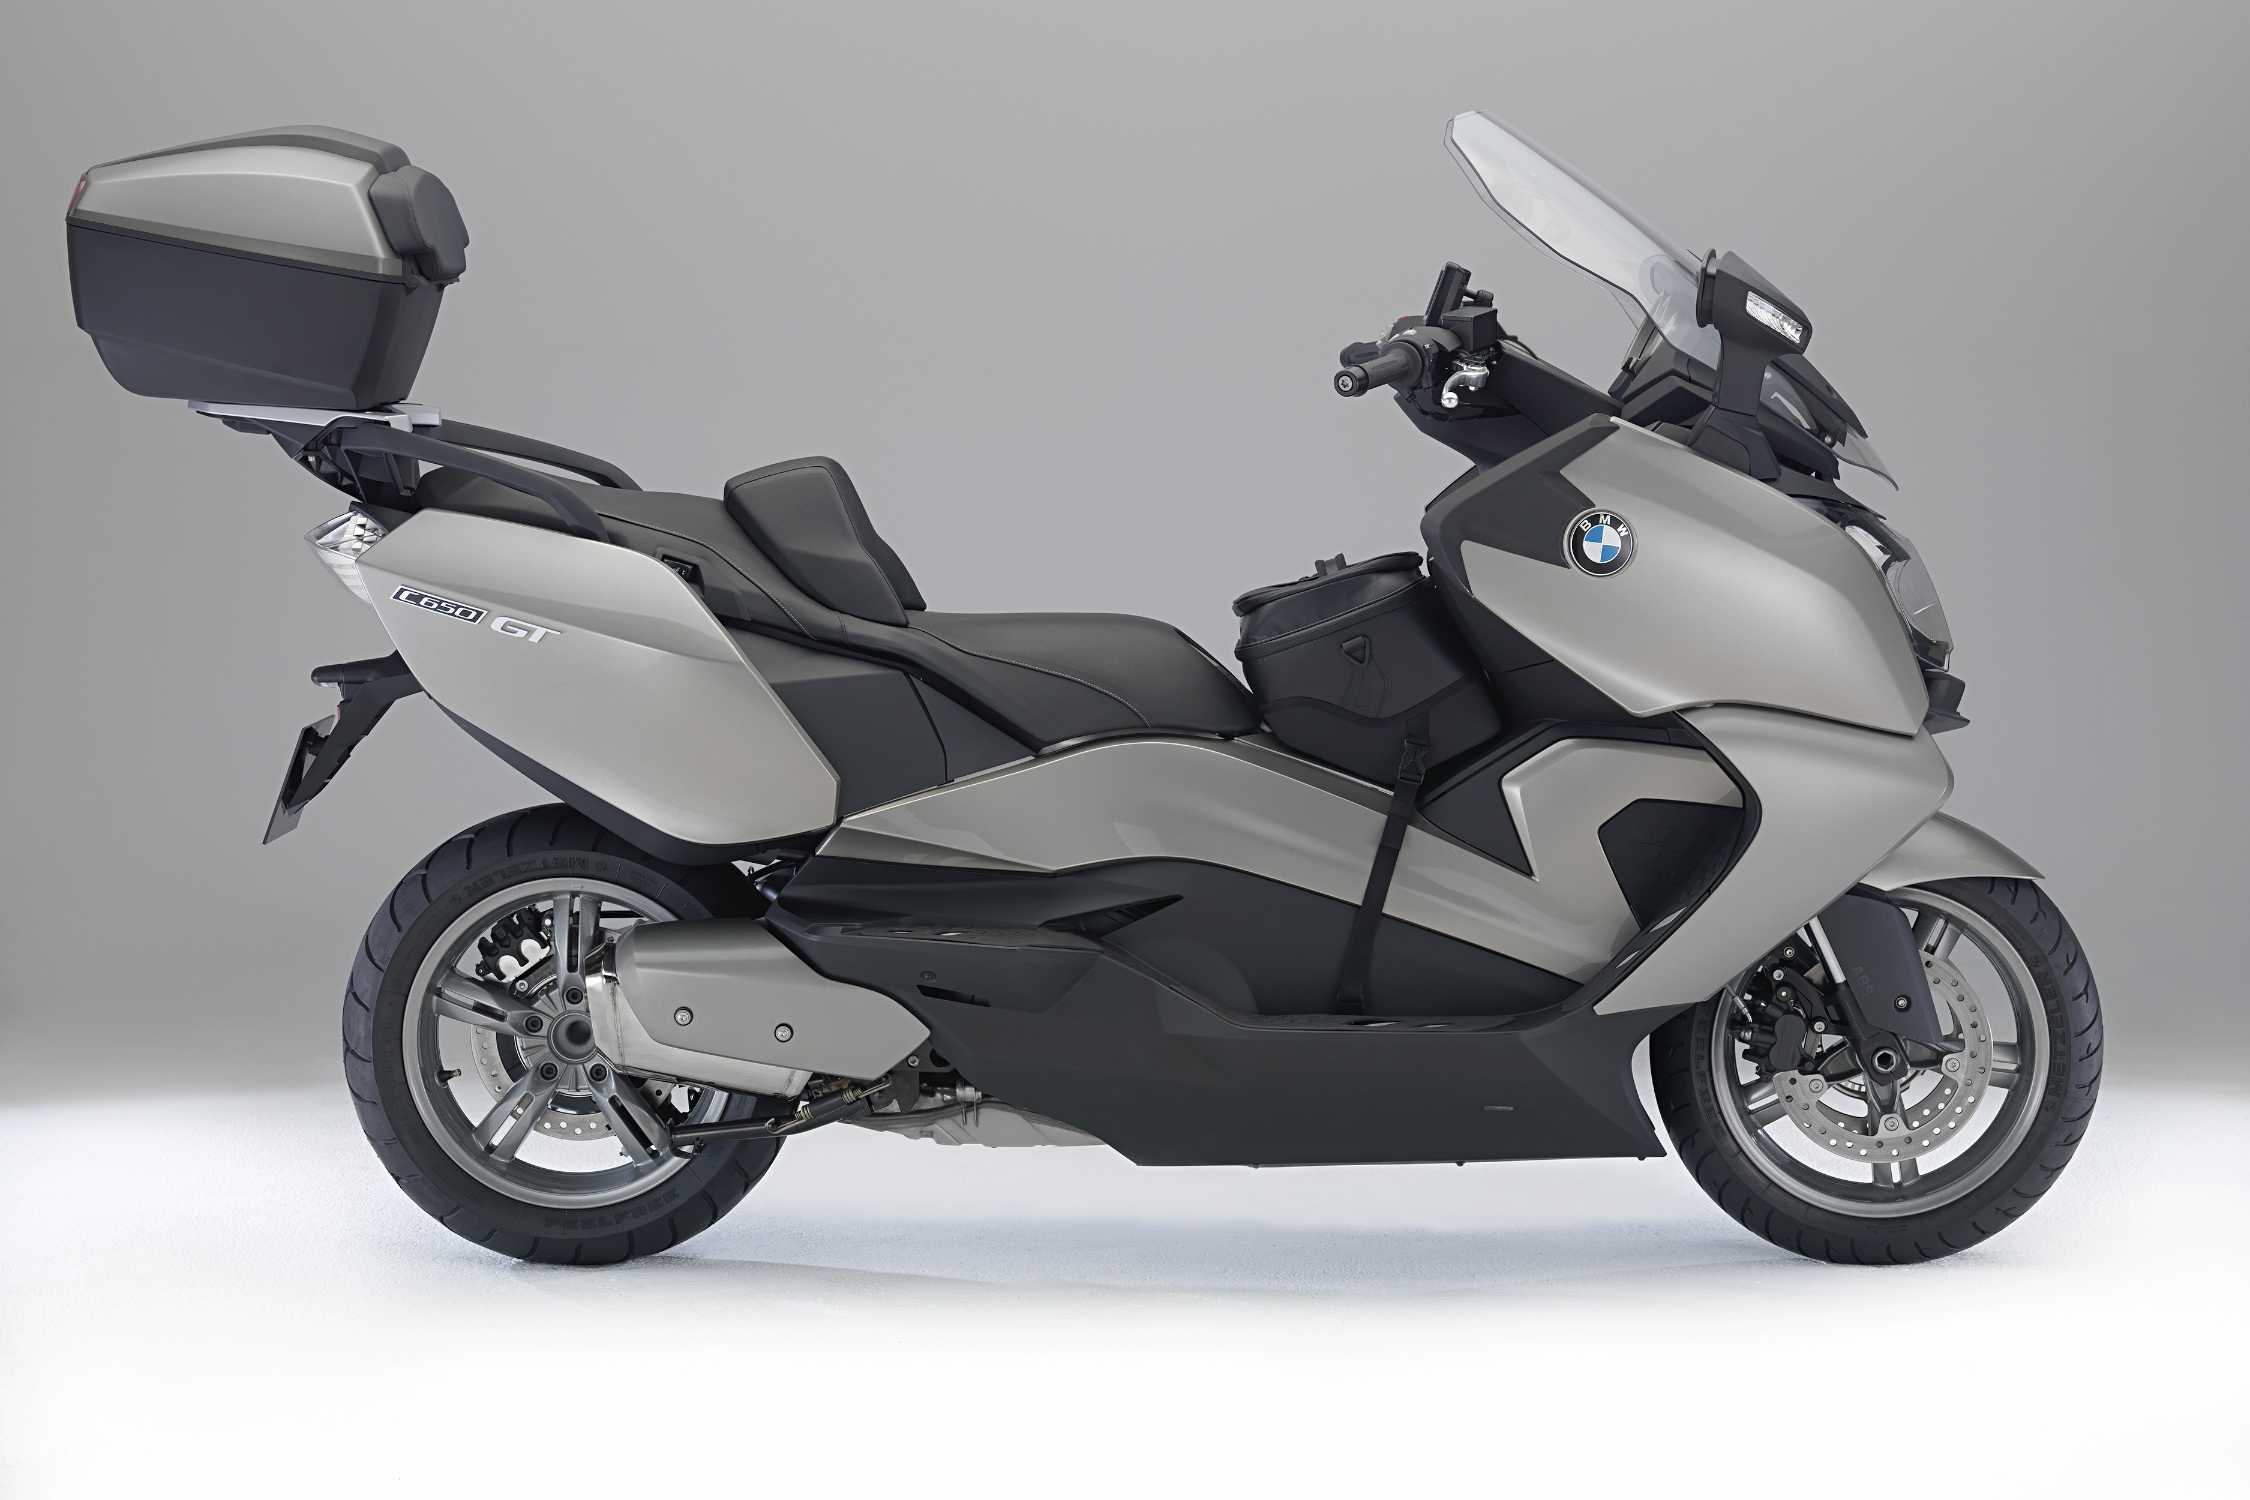 bmw c 650 gt with luggage rack topcase backrest for passenger seat heating centre tunnel bag. Black Bedroom Furniture Sets. Home Design Ideas